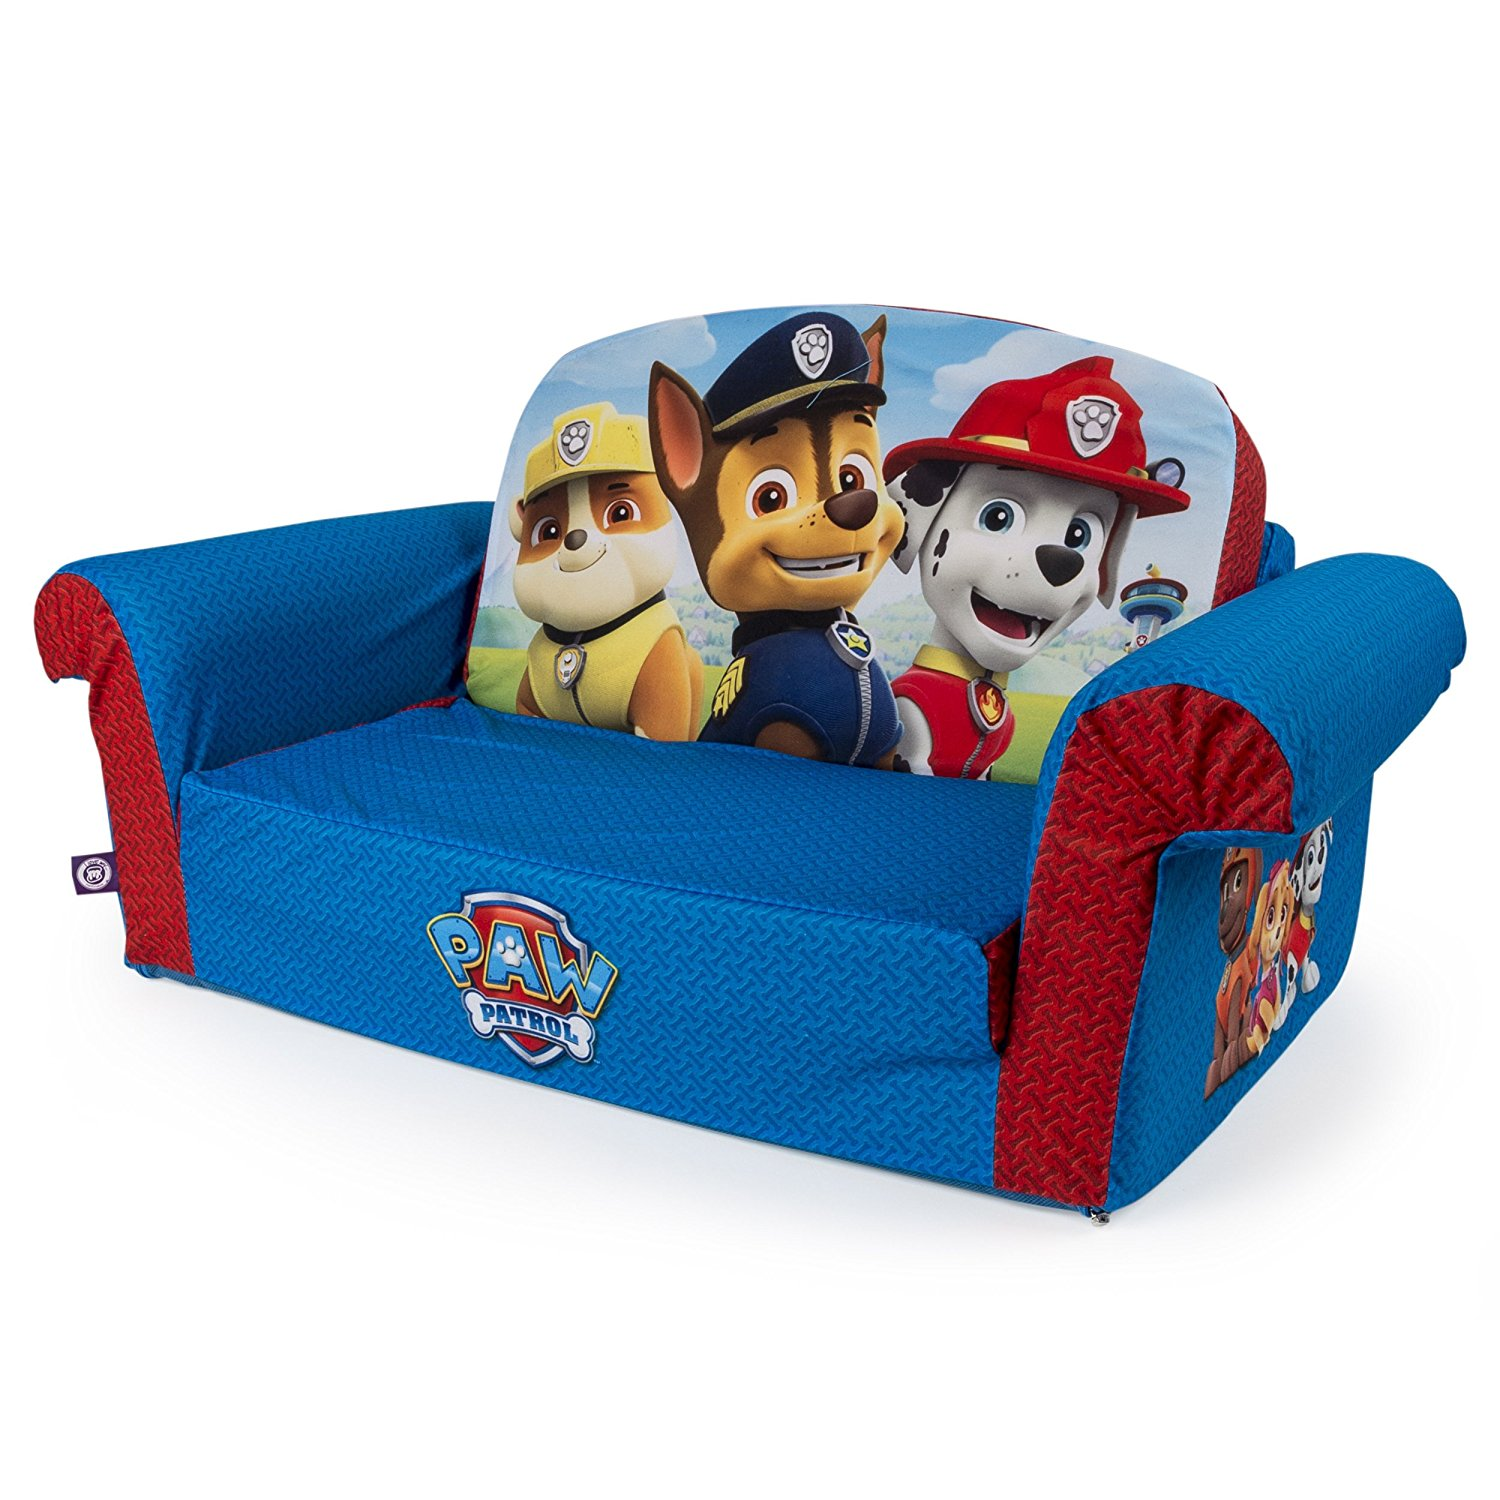 Kohls Bedroom Furniture | Lightning Mcqueen Sofa Bed | Toddler Flip Open Sofa